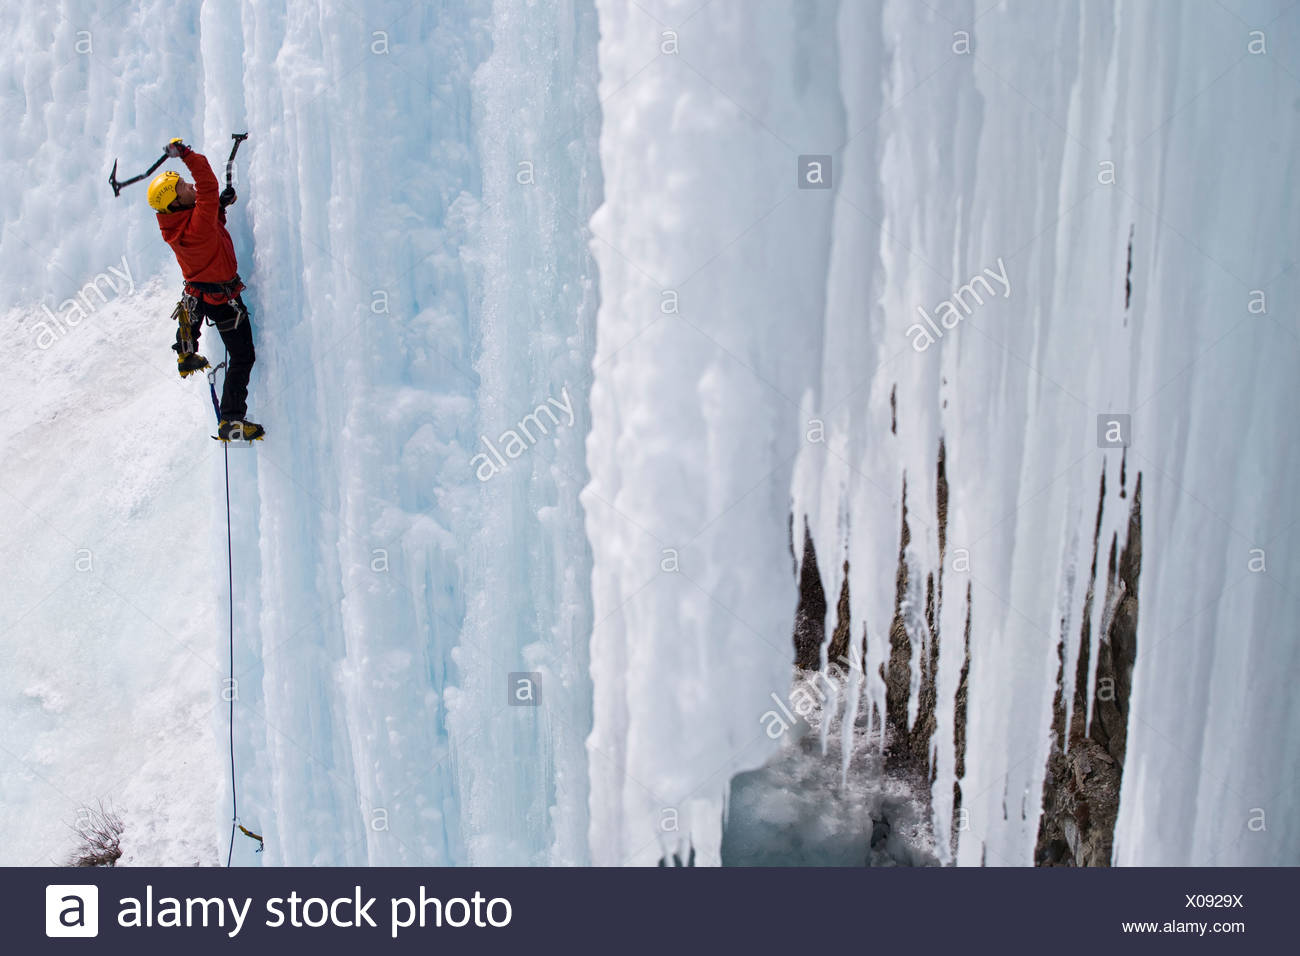 A male ice clmber tackles some steep ice in Johnstone Canyon, Banff National Park, AB - Stock Image